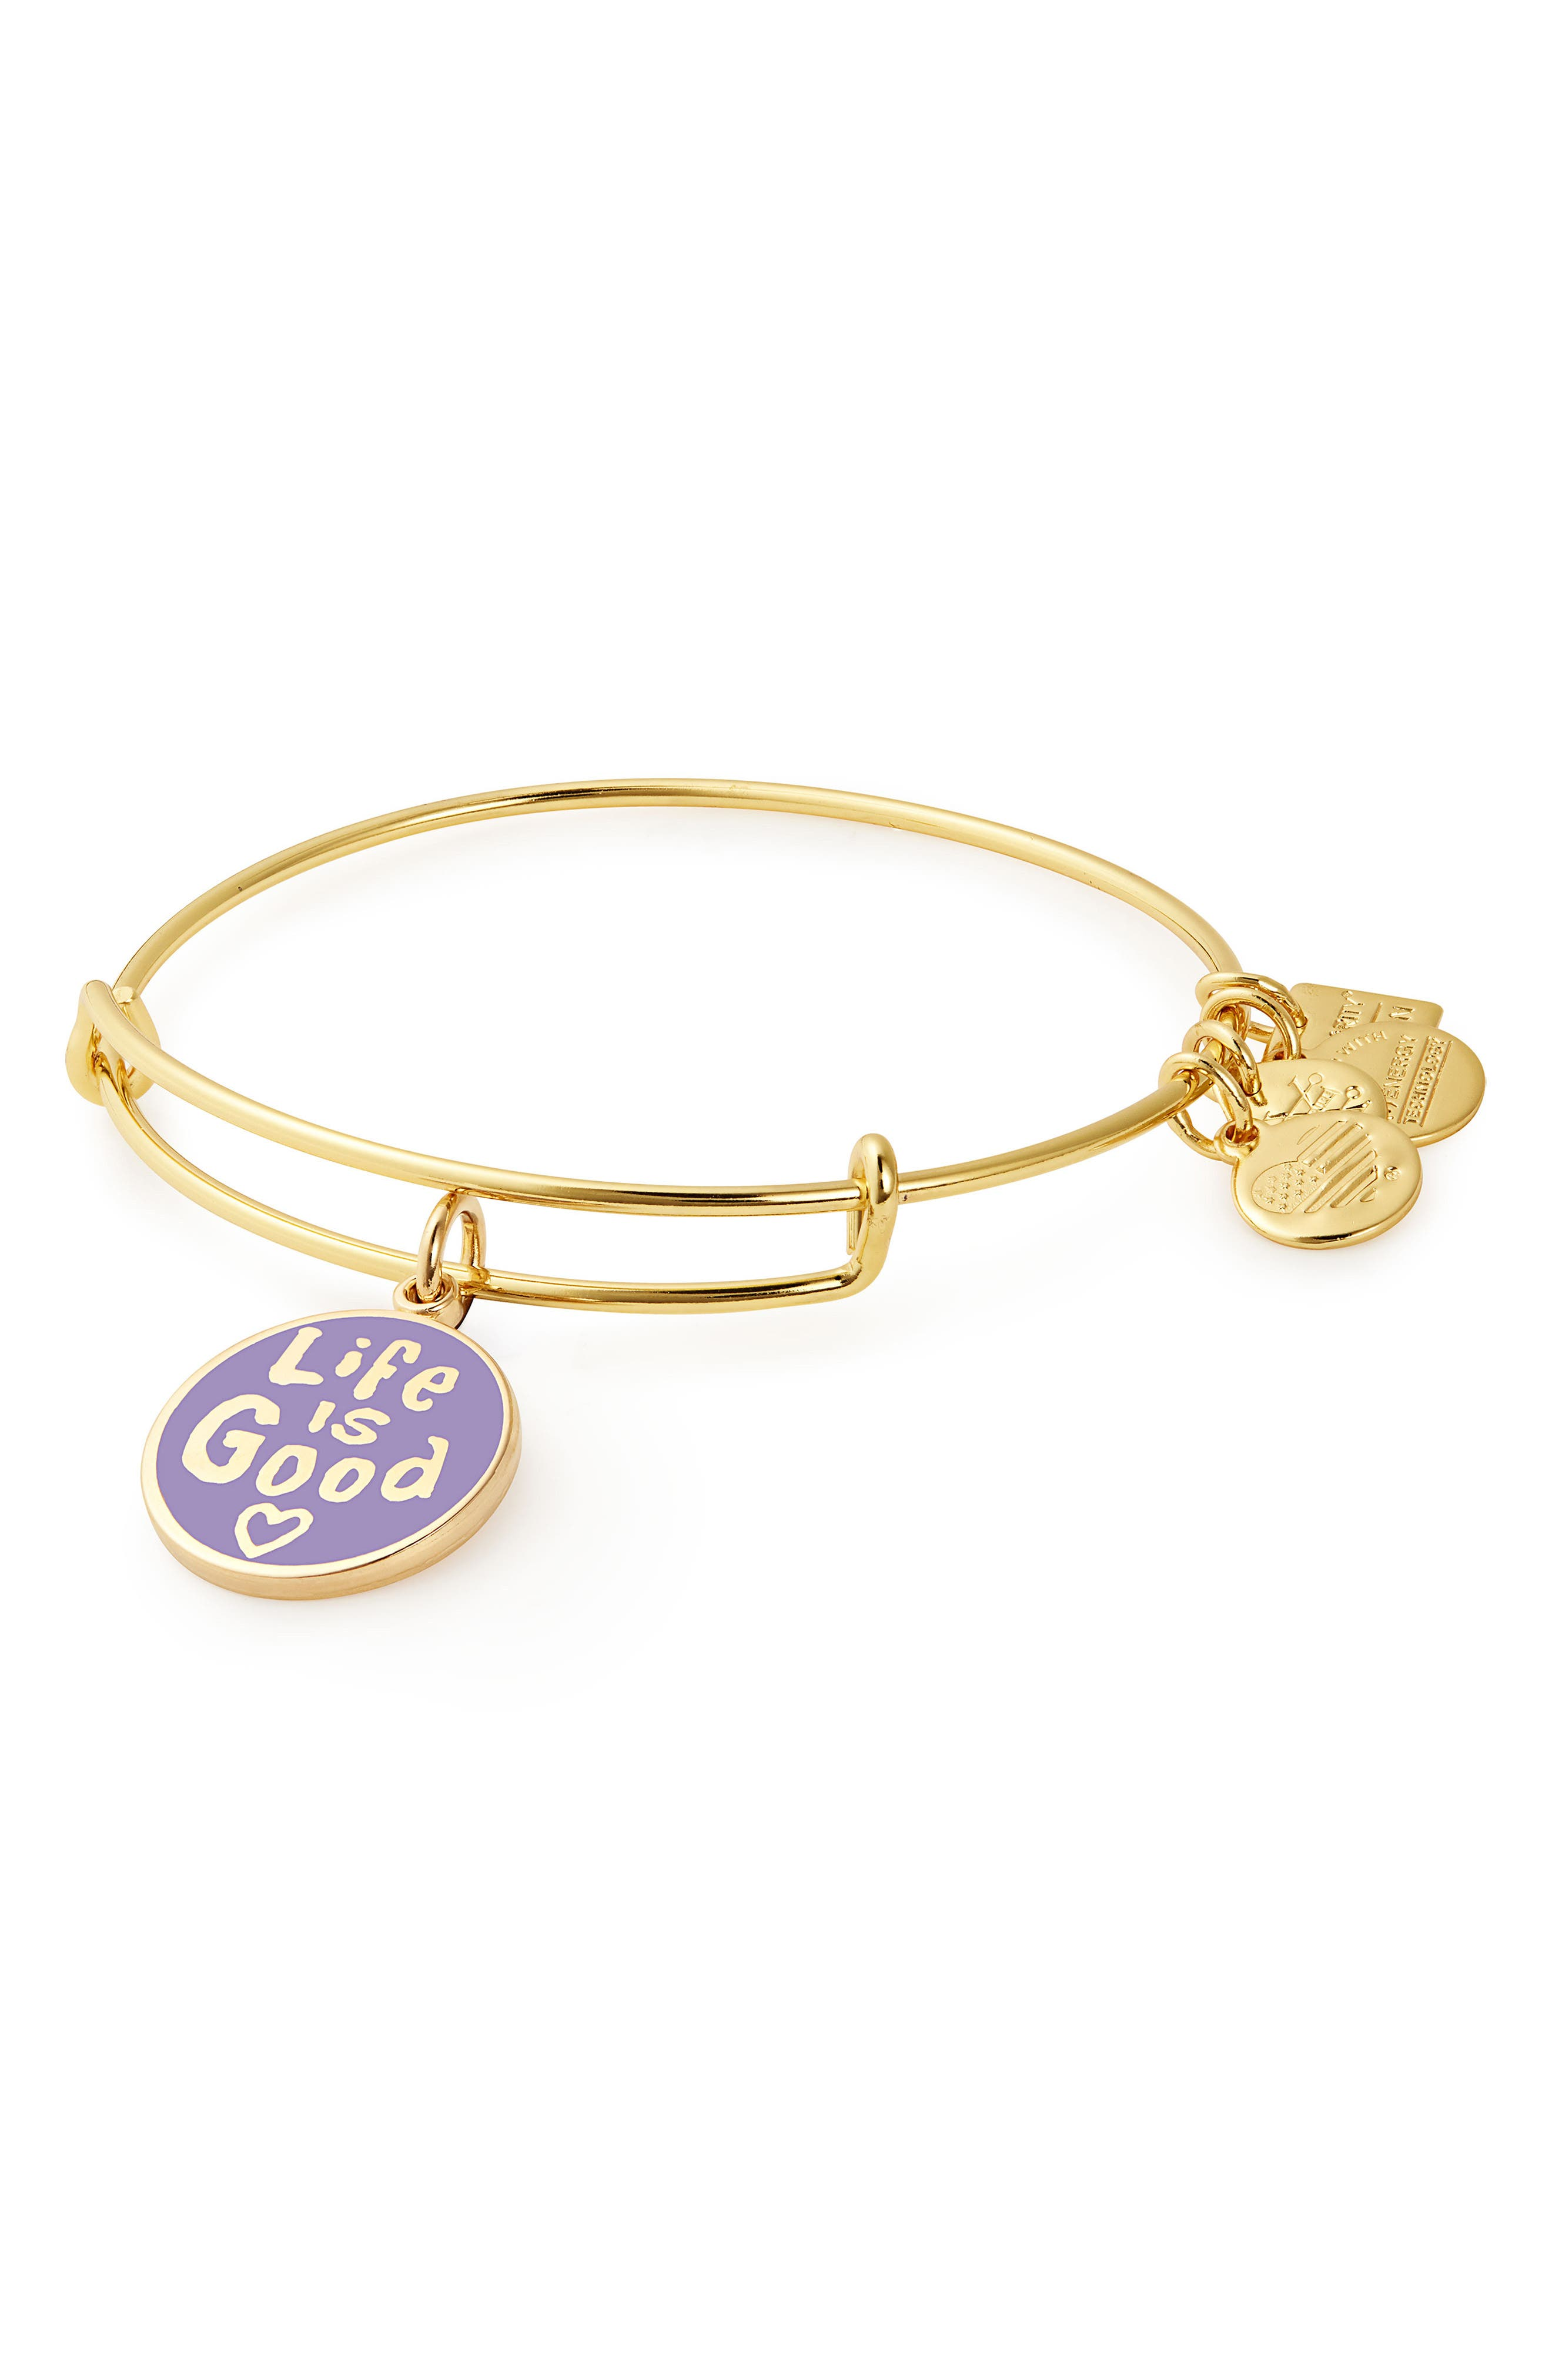 Charity by Design Life is Good Bangle,                         Main,                         color, GOLD